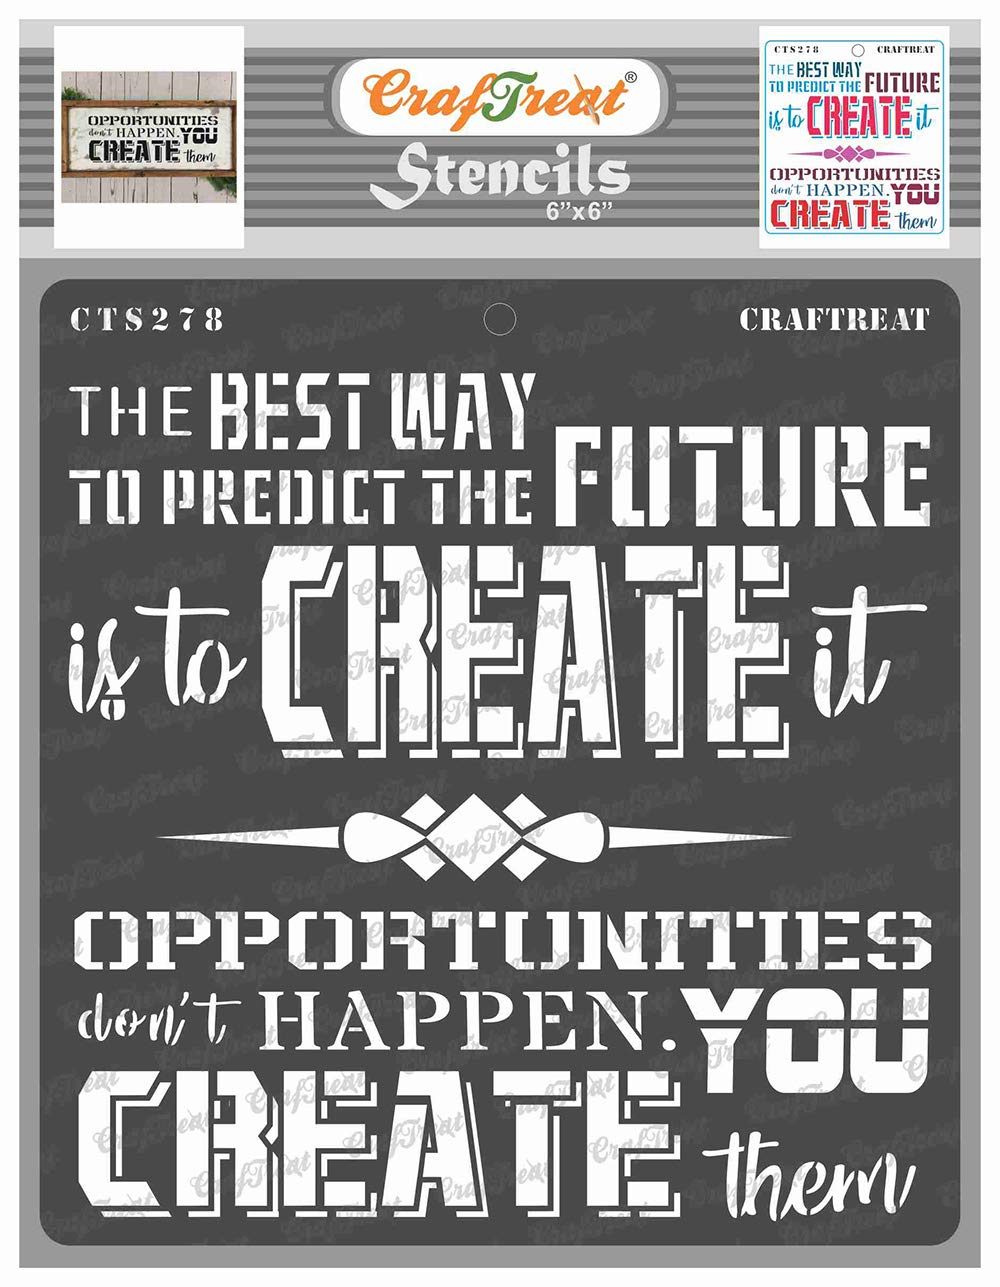 CrafTreat Quote Stencils for Painting on Wood, Canvas, Paper, Fabric, Floor, Wall and Tile - Create Opportunitiesz - 6x6 Inches - Reusable DIY Art and Craft Stencils with Quotes - Wall Stencil Quotes